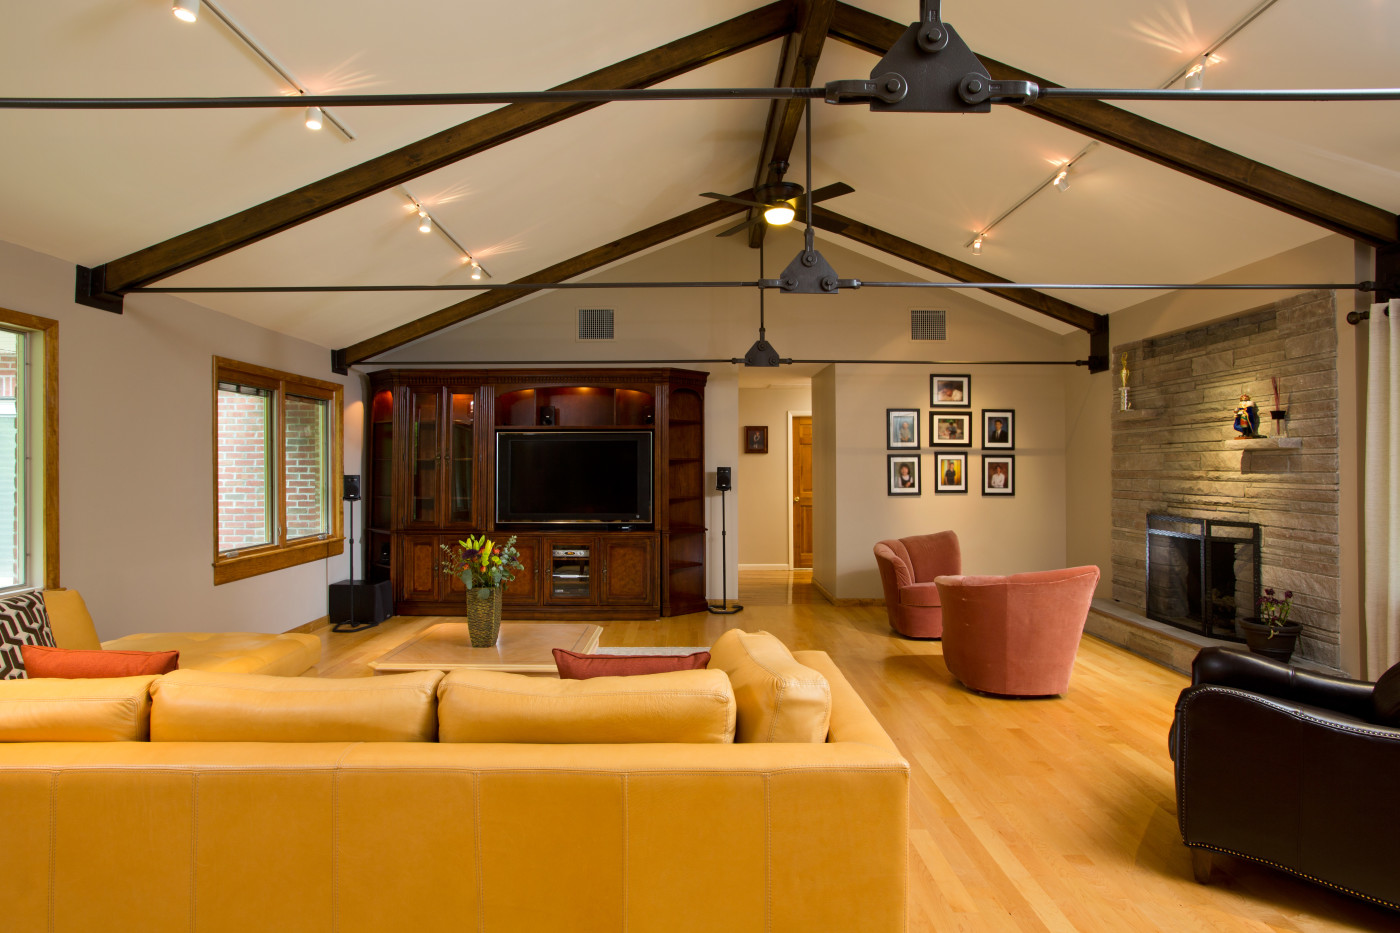 Best Of Wooden Ceiling Designs for Living Room